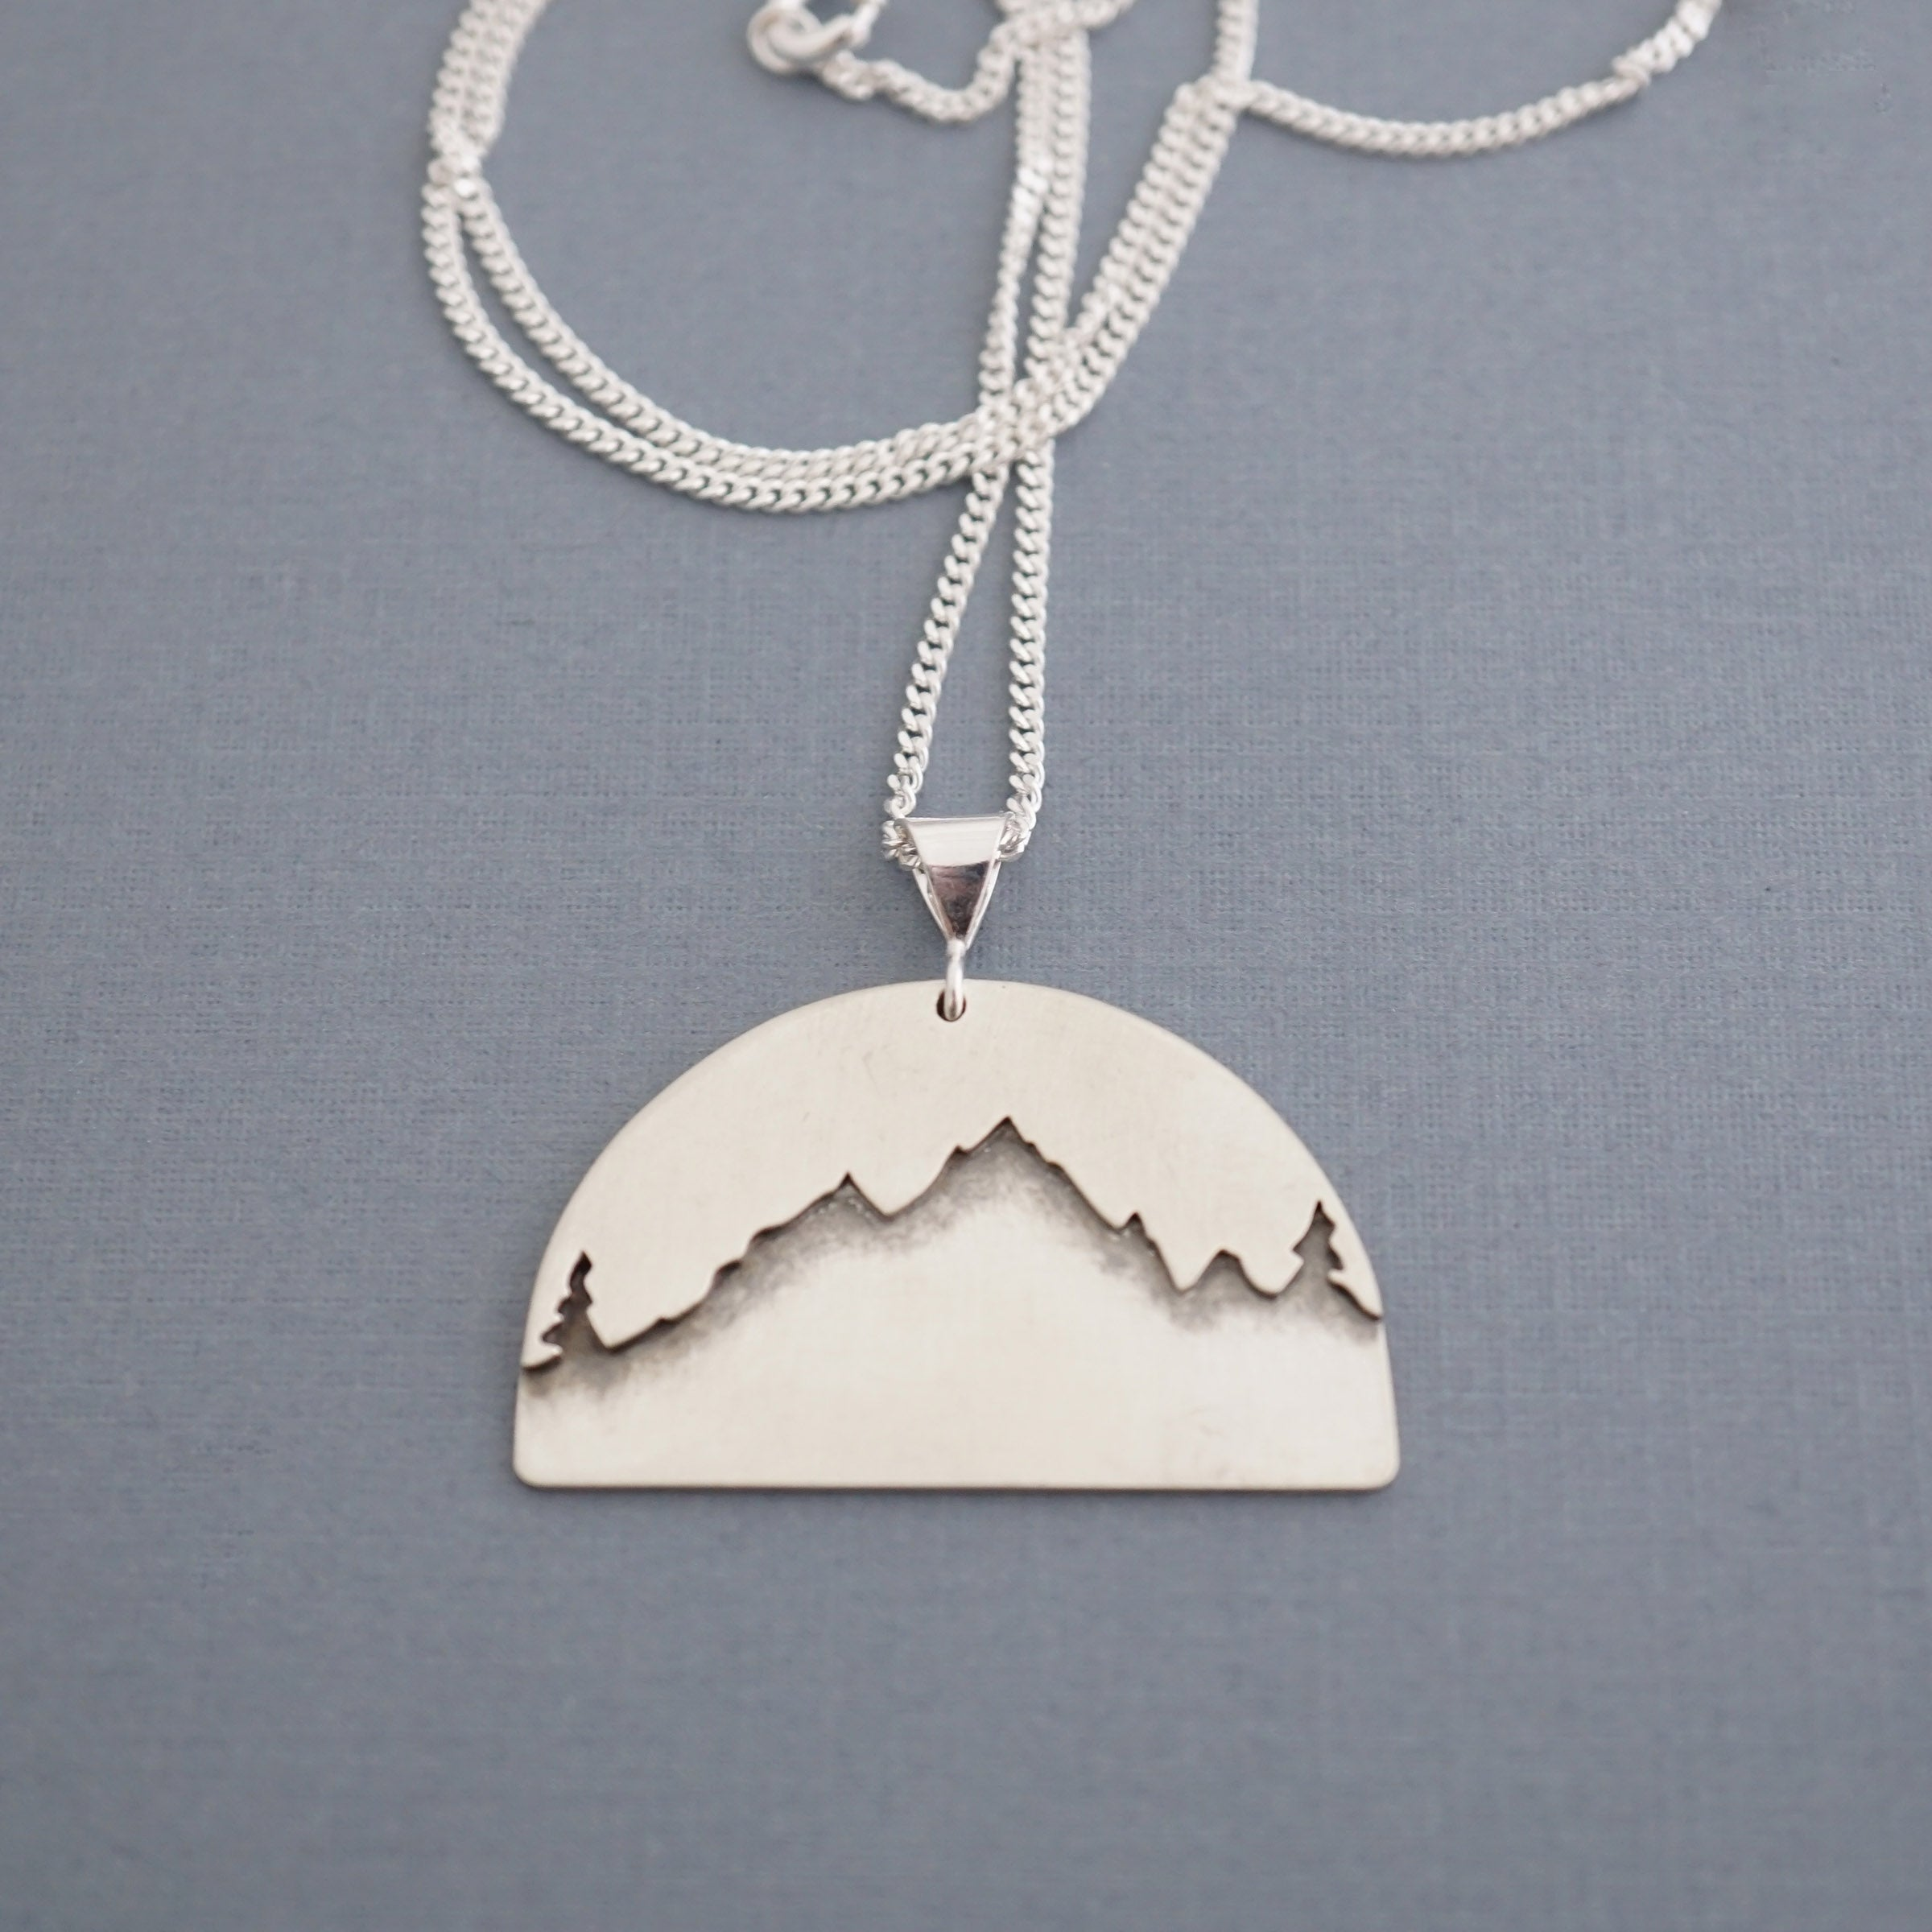 Forest Mountain Silhouette Pendant